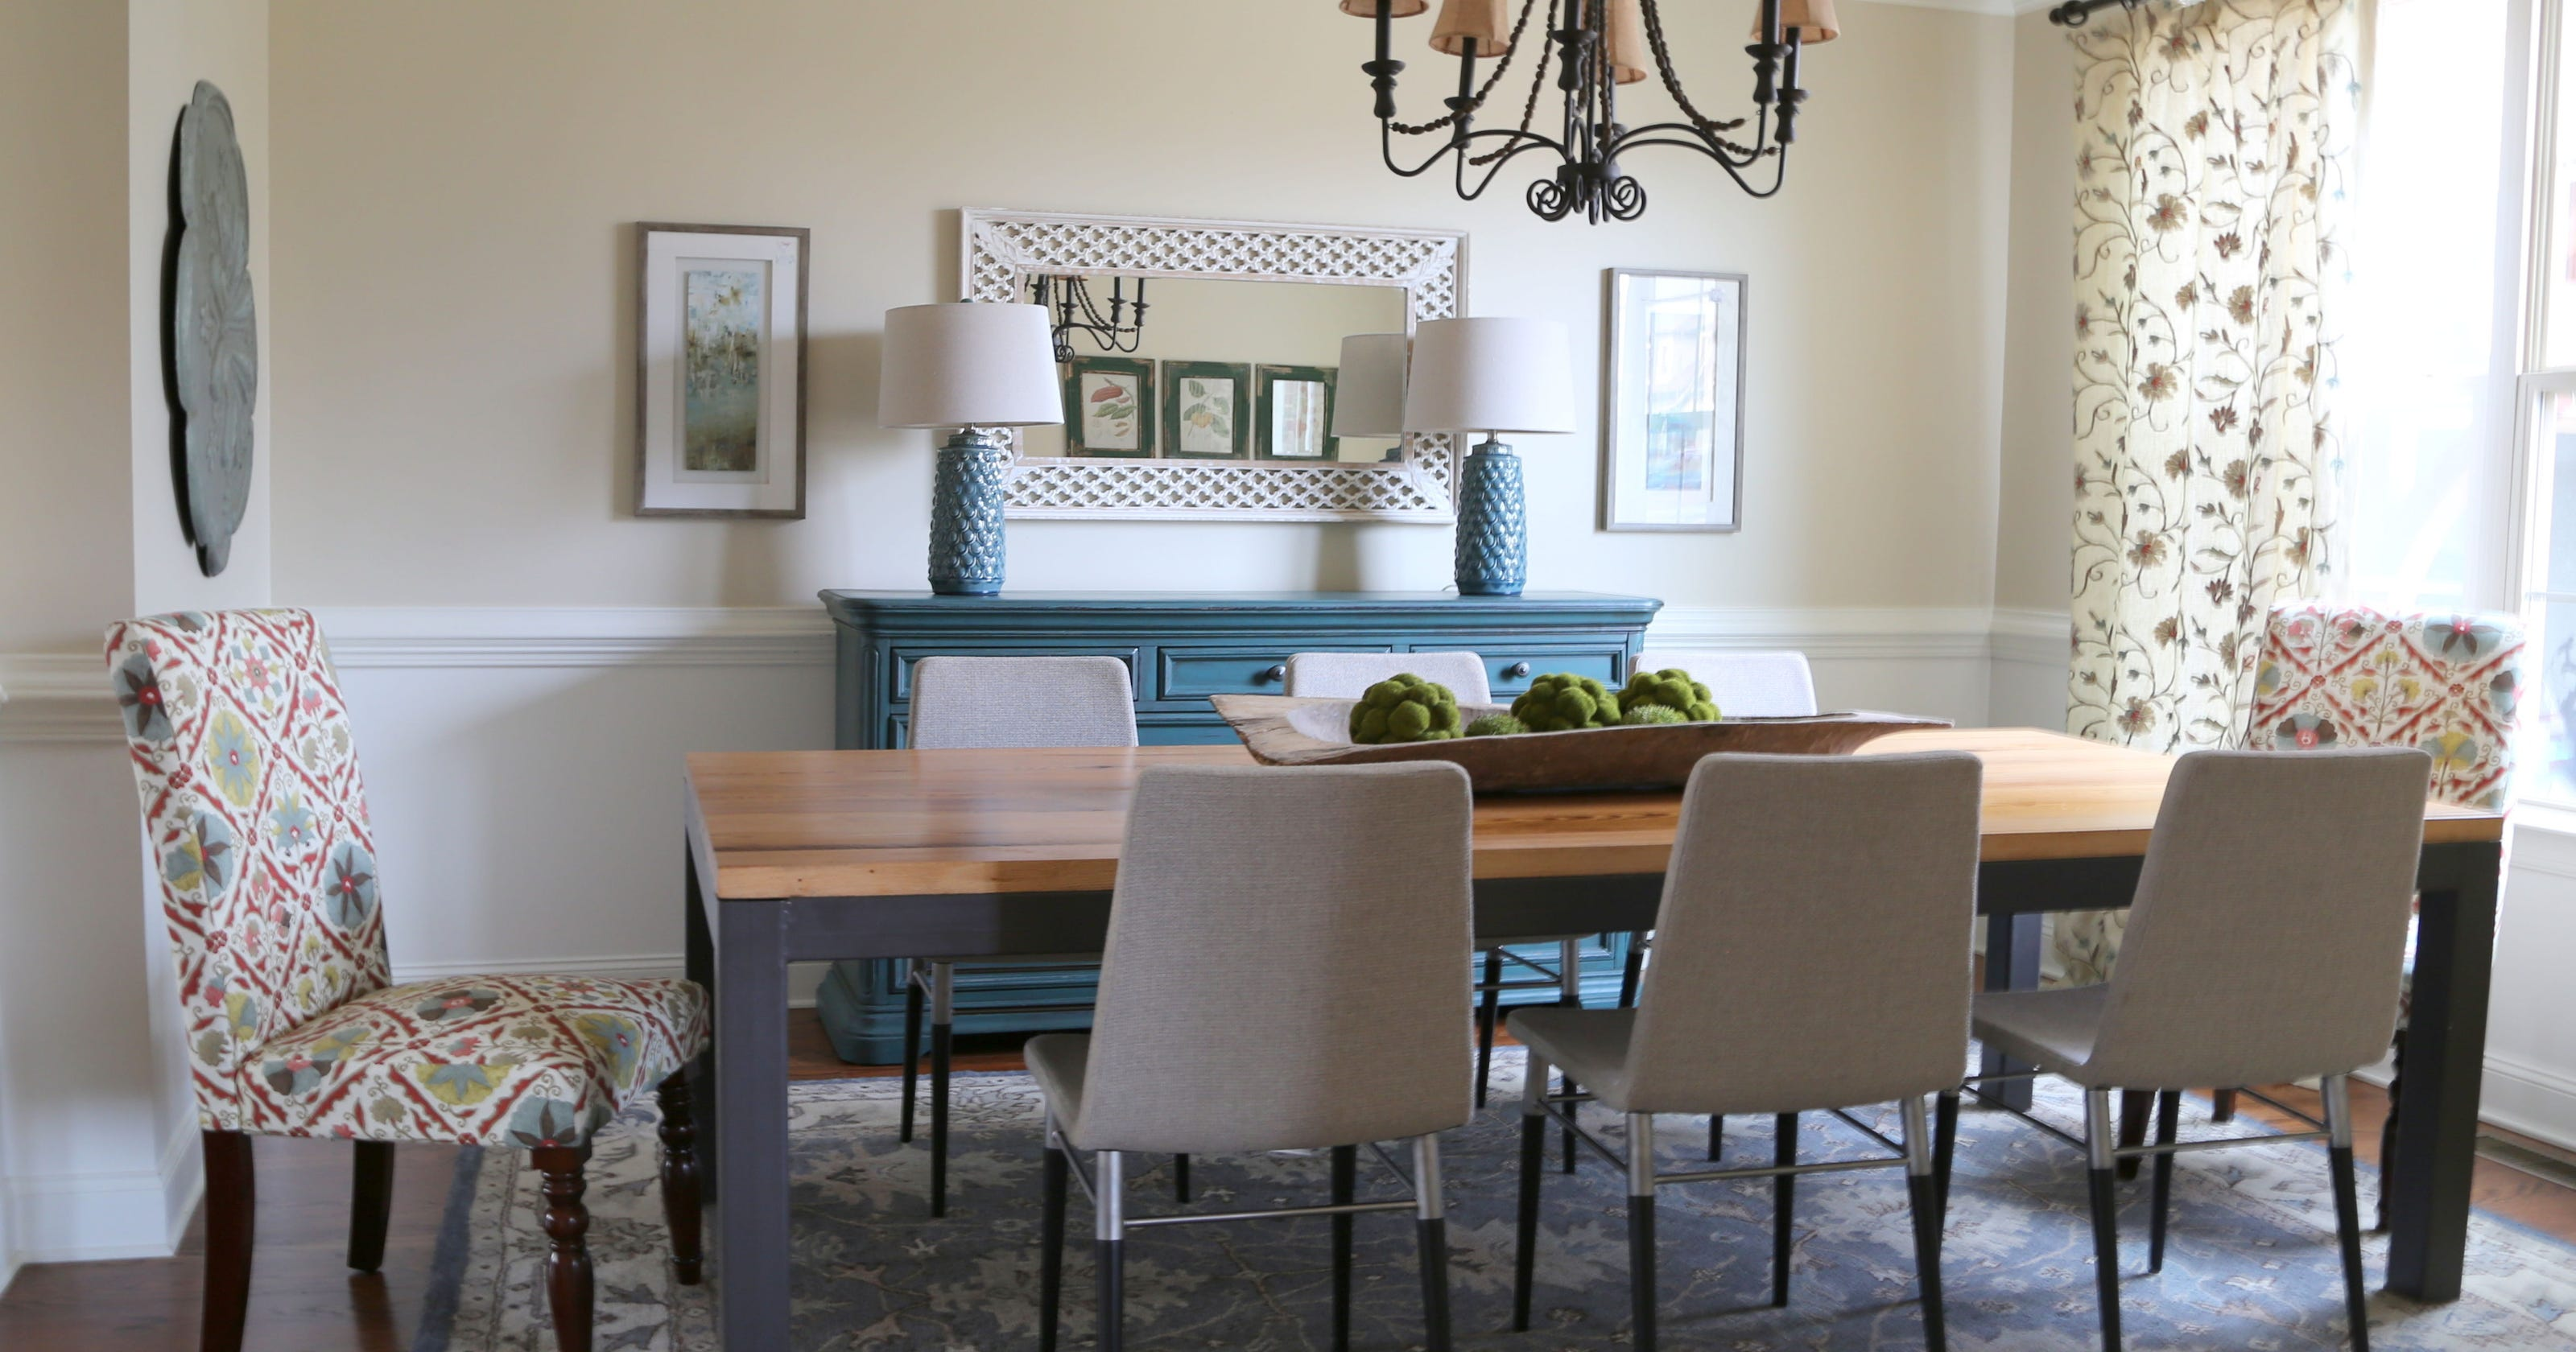 Say goodbye to the formal dining room